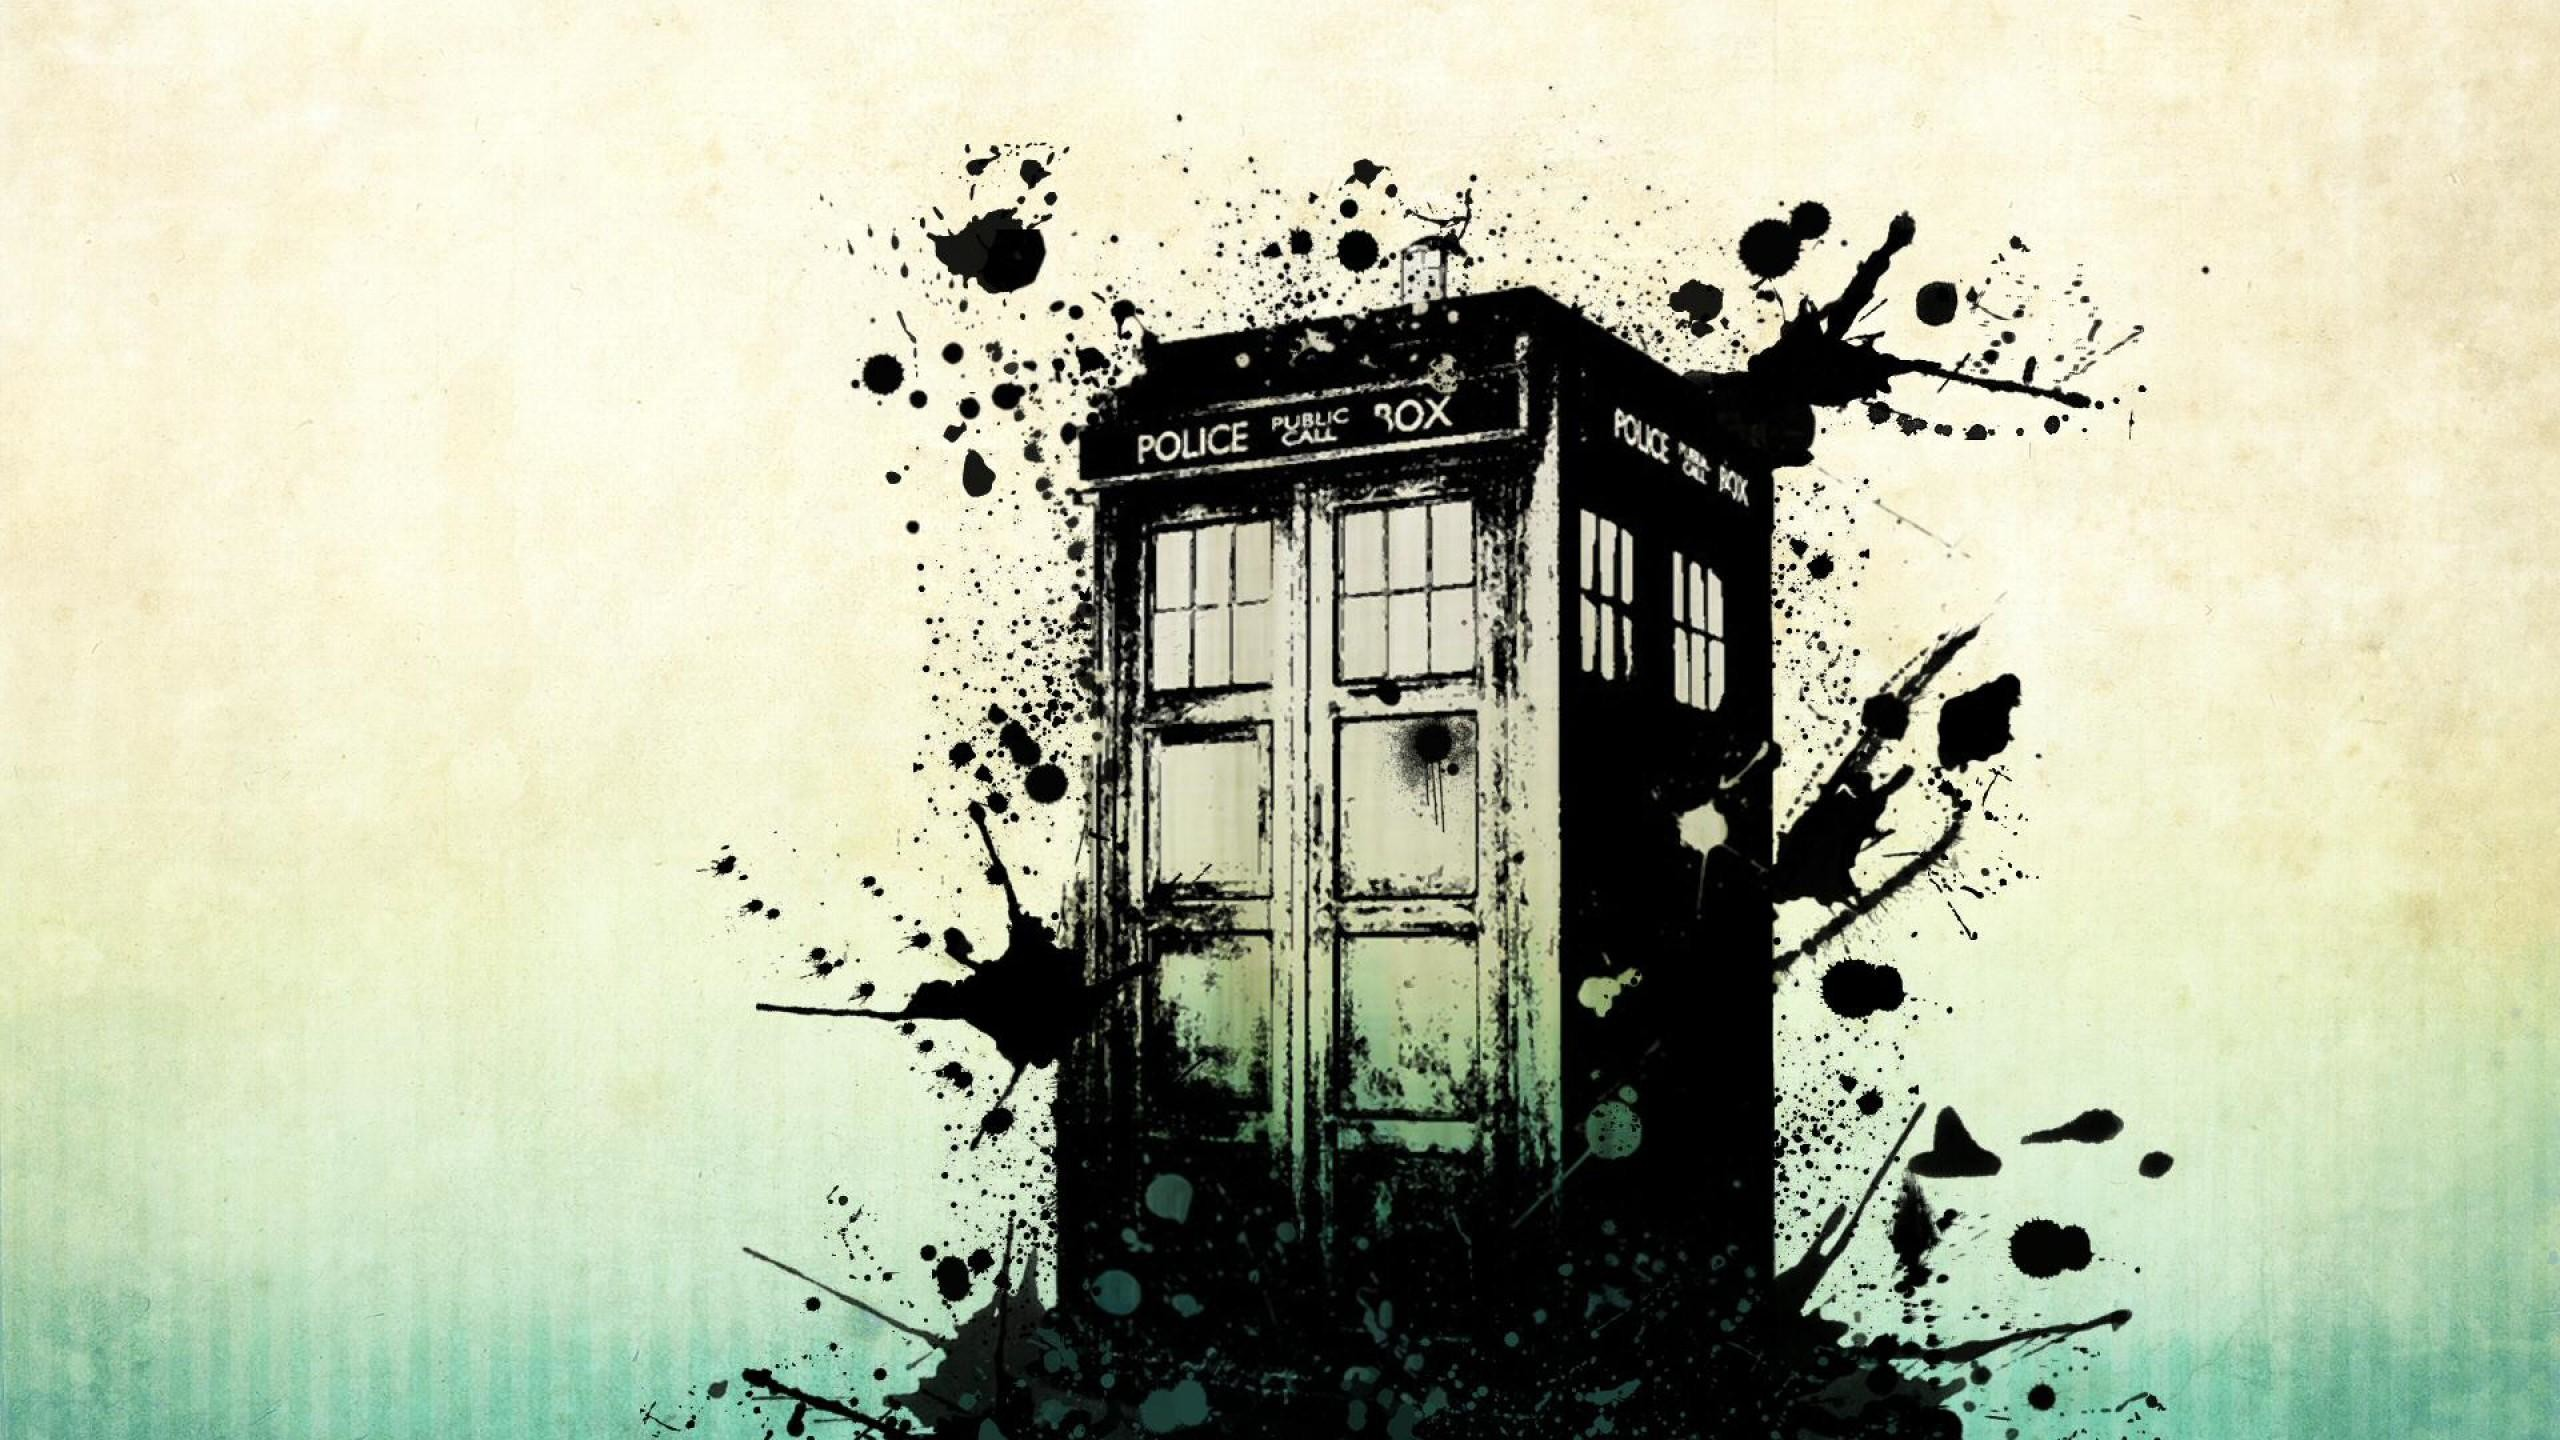 Doctor Who Wallpaper 1920x1080 61 Images